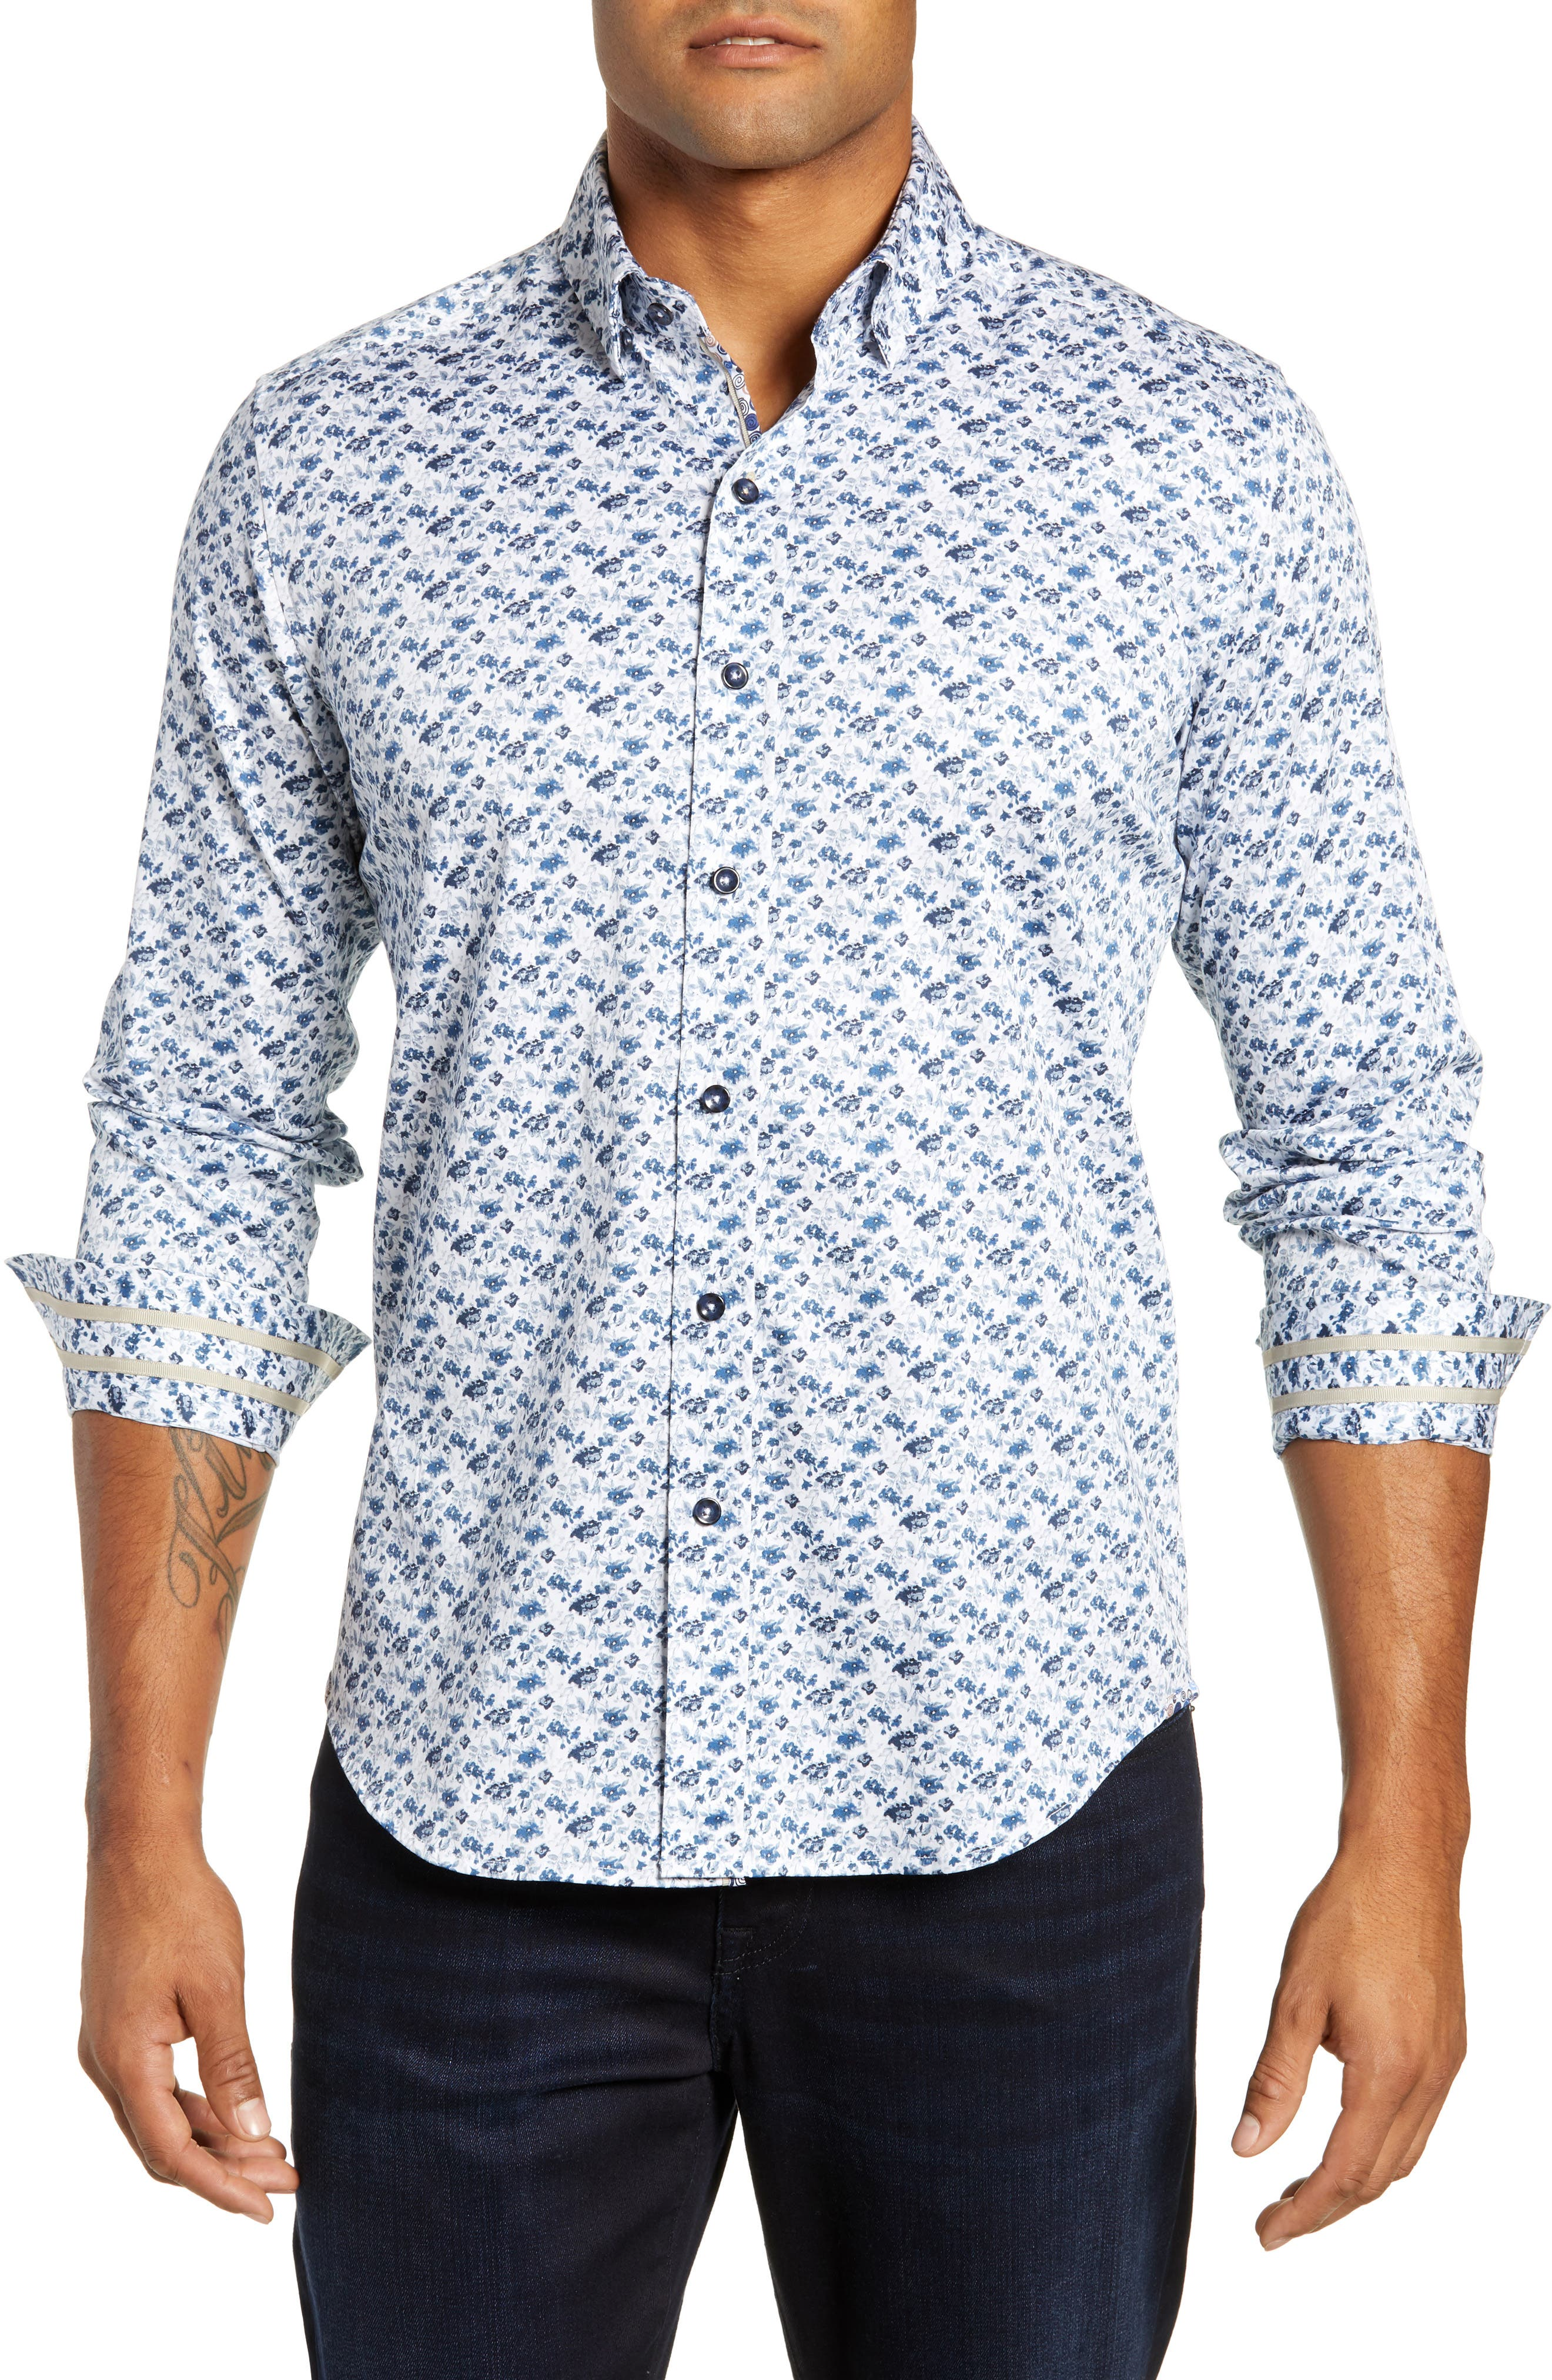 Tiller Tailored Fit Sport Shirt,                         Main,                         color, WHITE